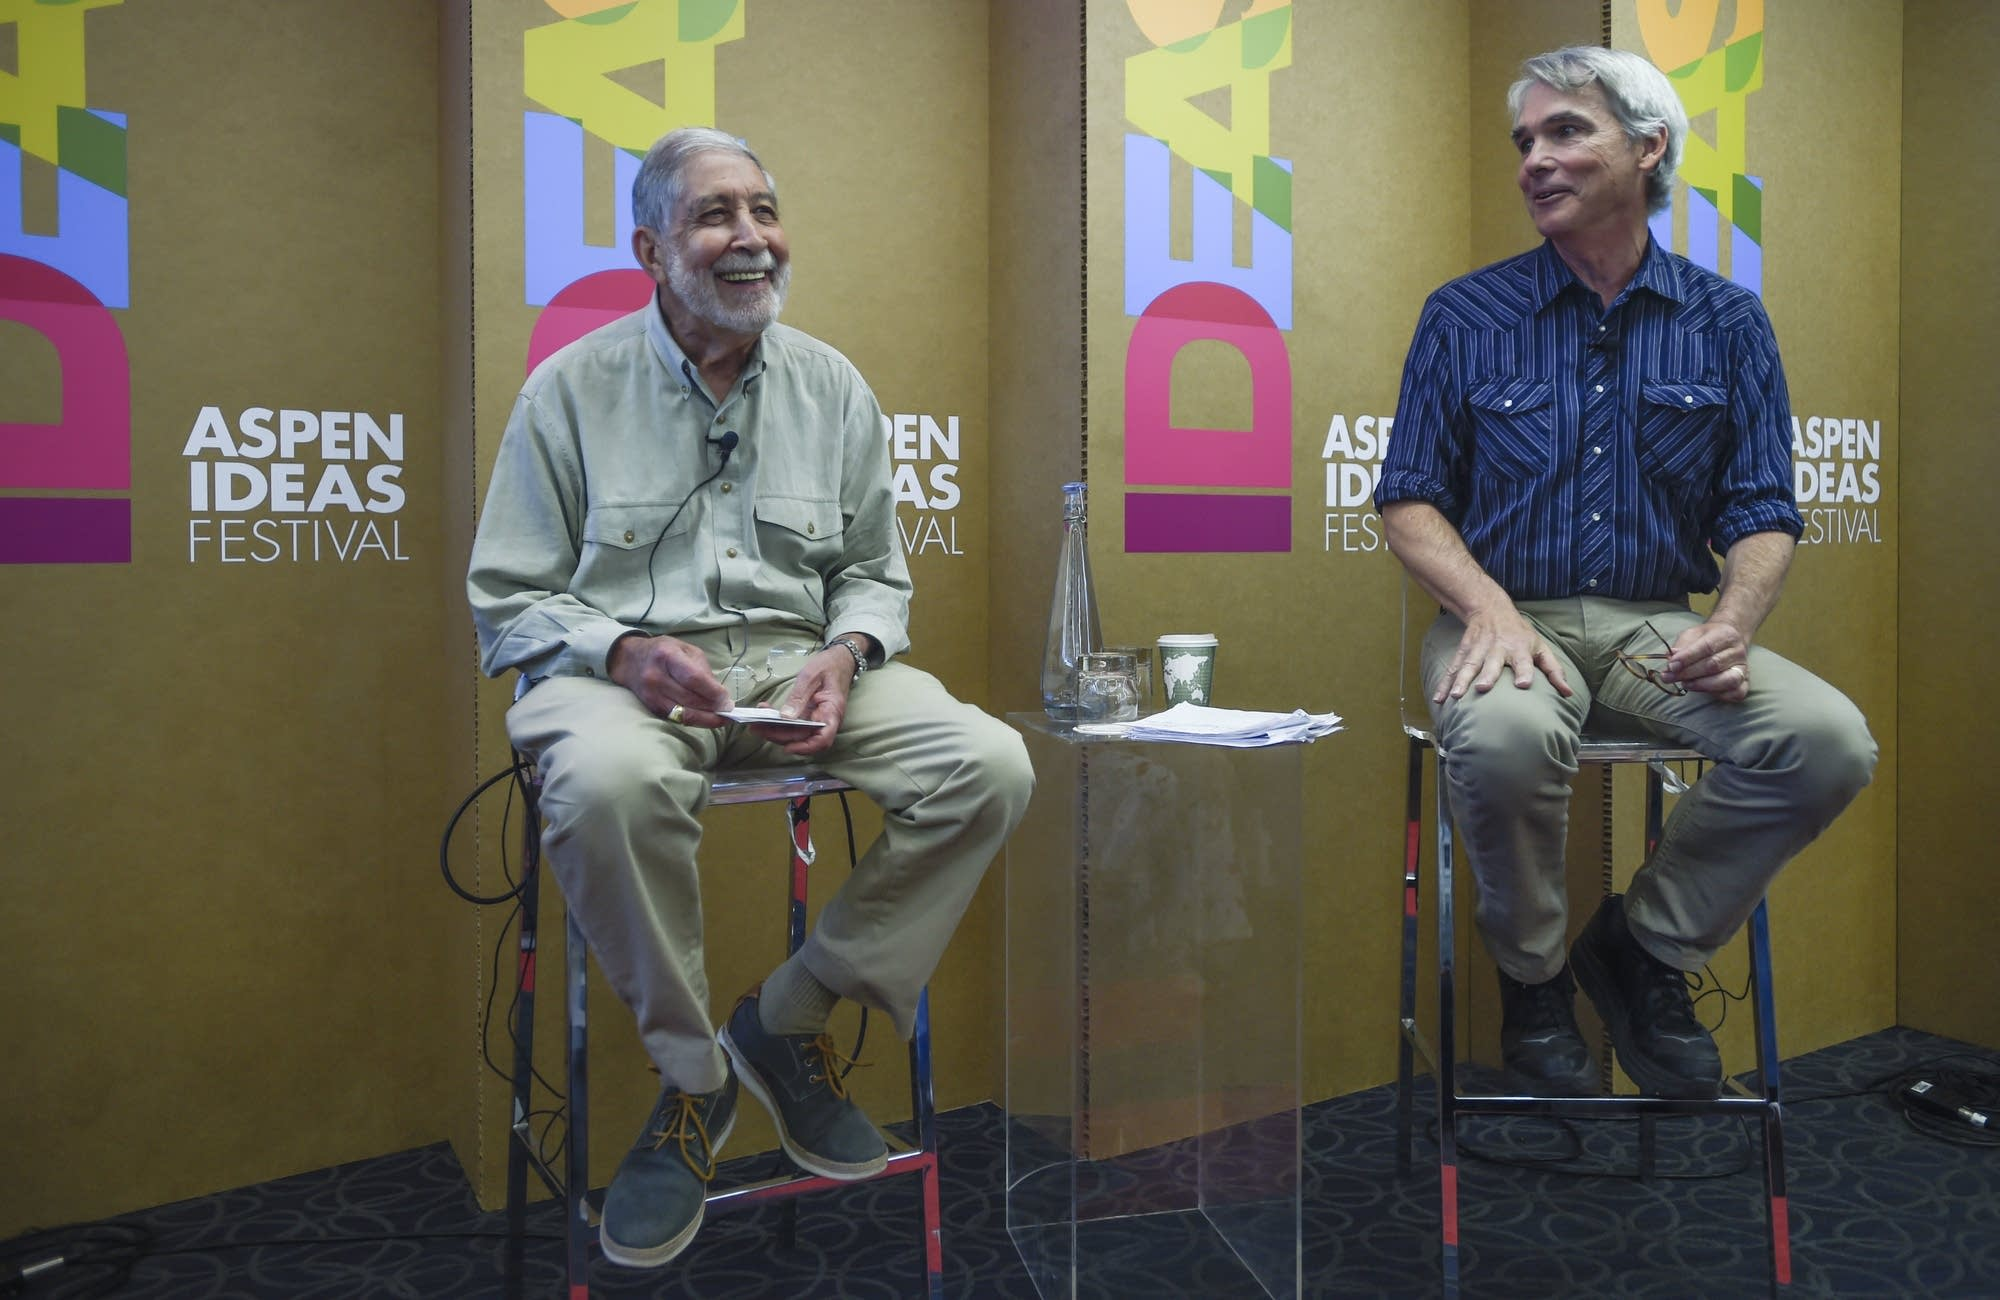 Mickey Edwards and William Bishop at the Aspen Ideas Festival.